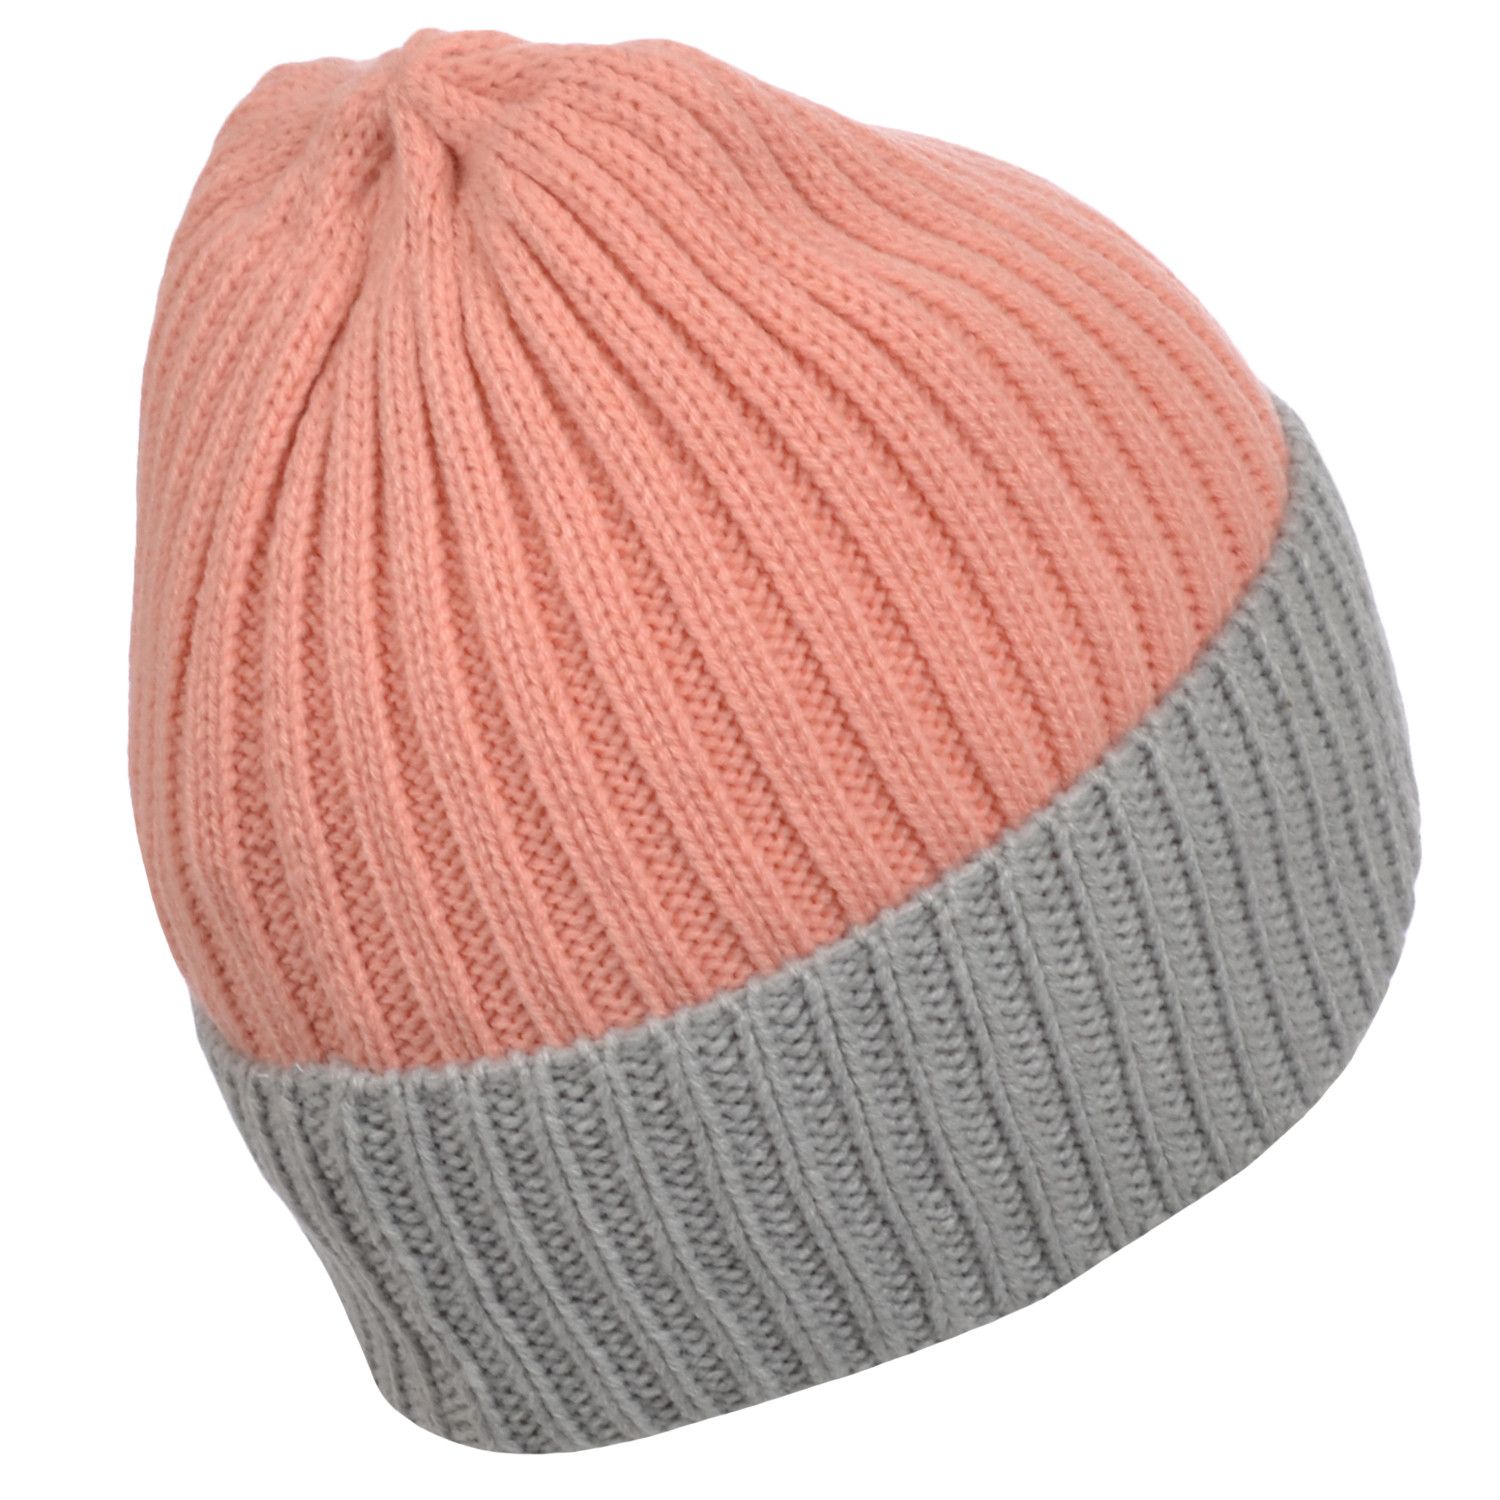 Elegant Adidas Neo Womens La S Knitted Warm Thick Two tone Ladies Knitted Hats Of Adorable 50 Pictures Ladies Knitted Hats